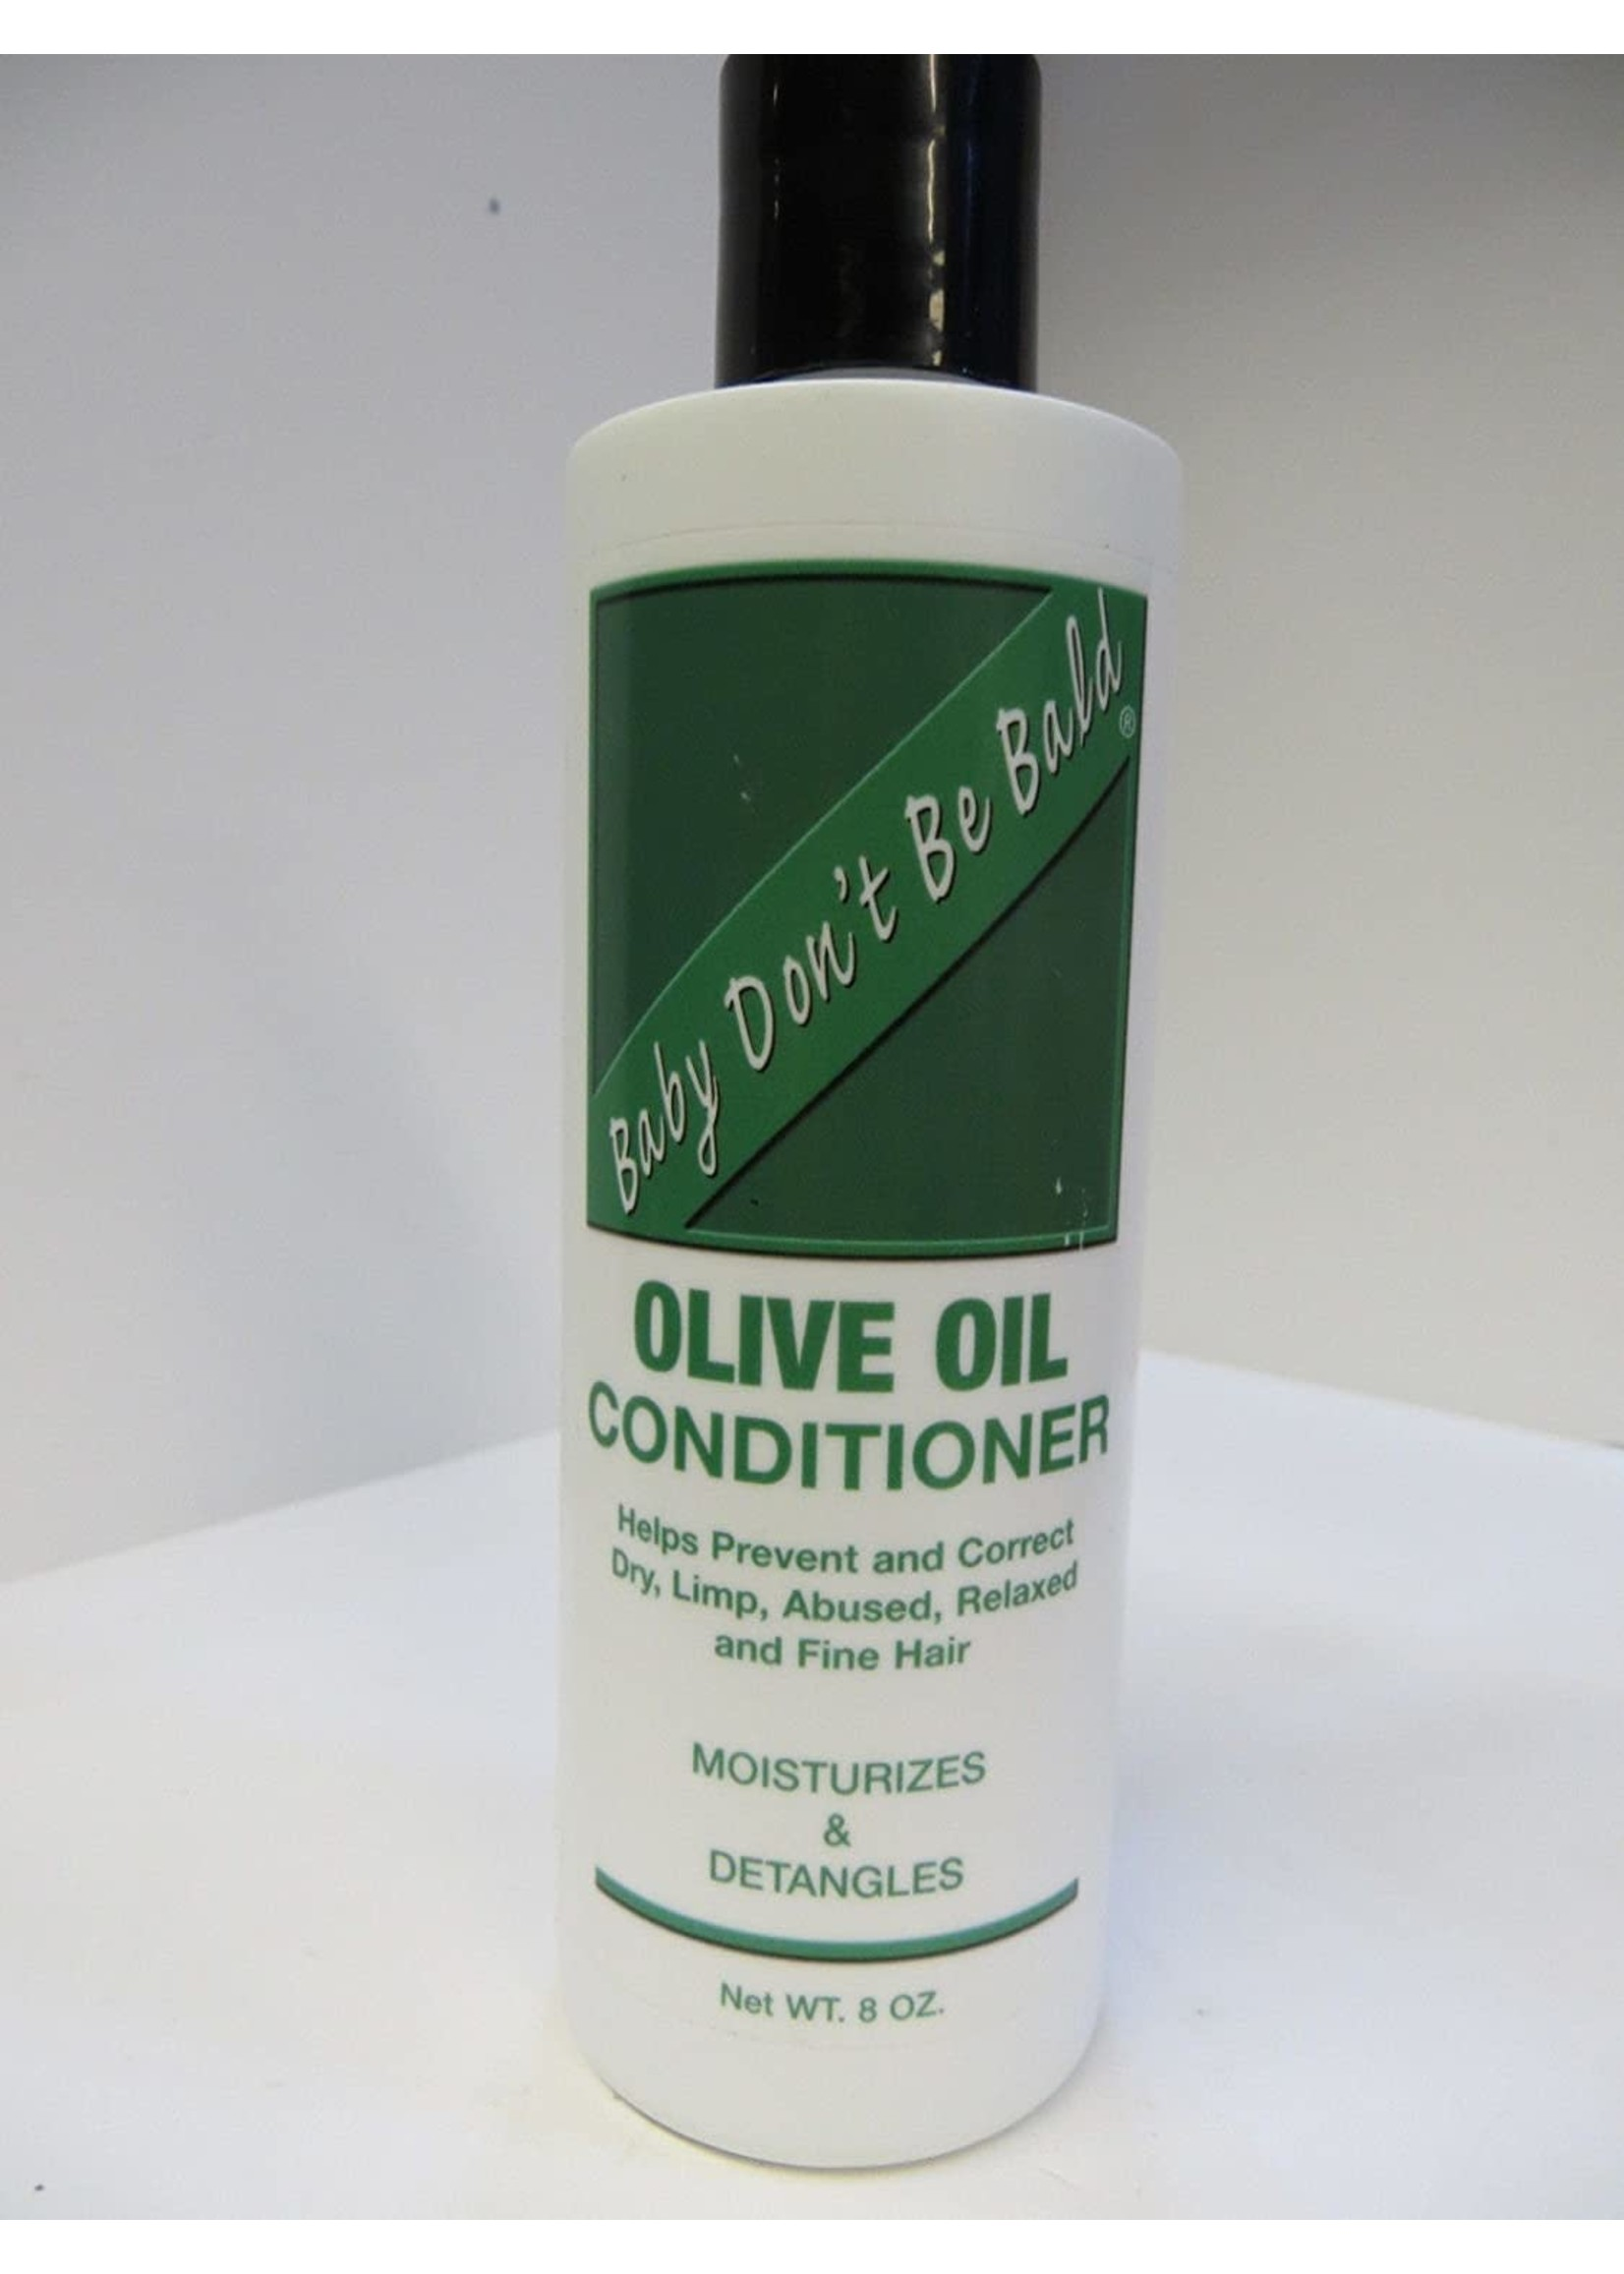 Baby Dont Be Bald [Olive Oil] Conditioner